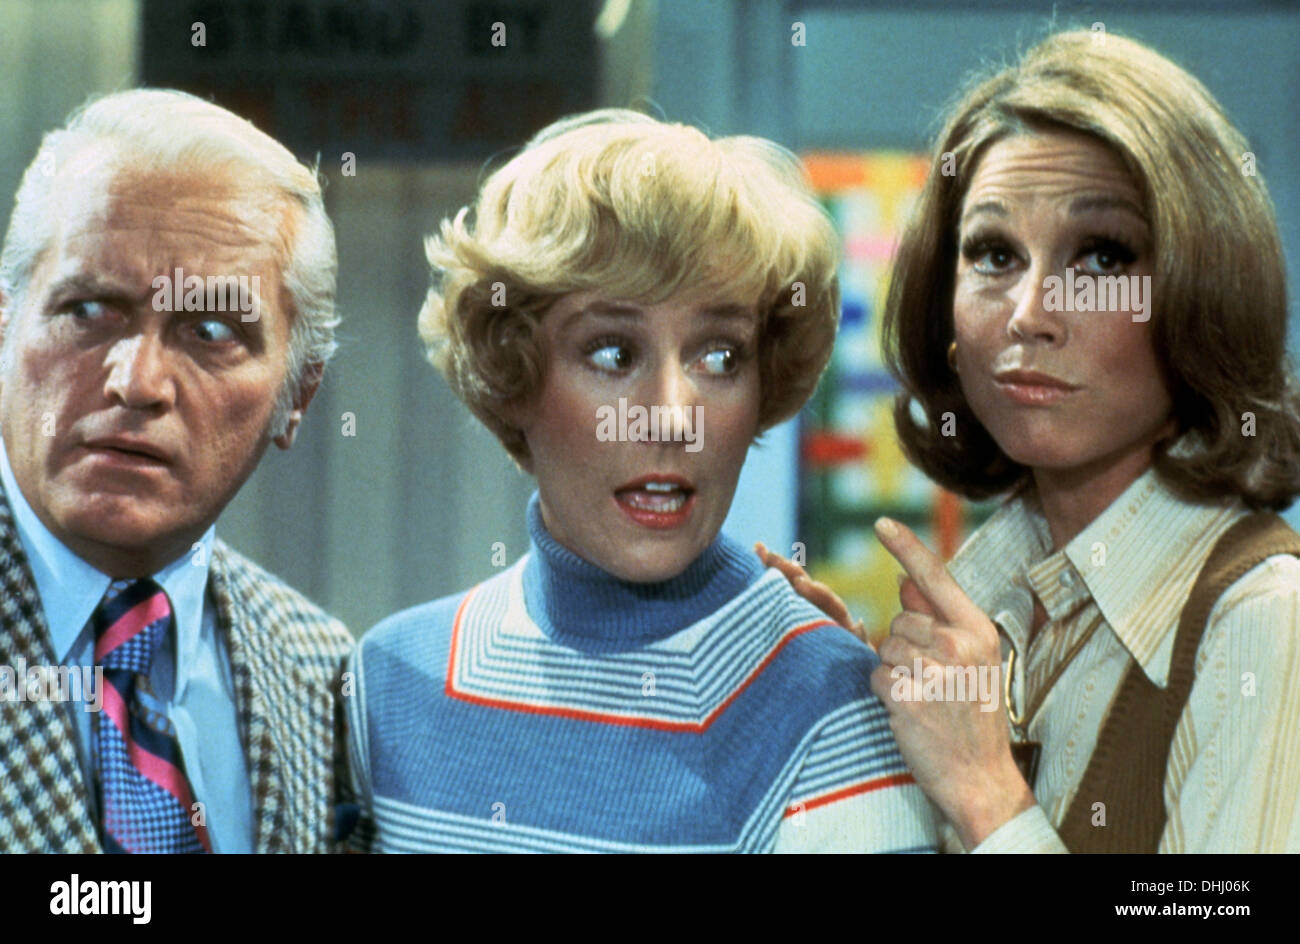 MARY TYLER MOORE SHOW (TV) (1970-1977) TED KNIGHT, GEORGIA ENGEL, MARY TYLER MOORE, MTMS 015 MOVIESTORE COLLECTION LTD. Stockbild